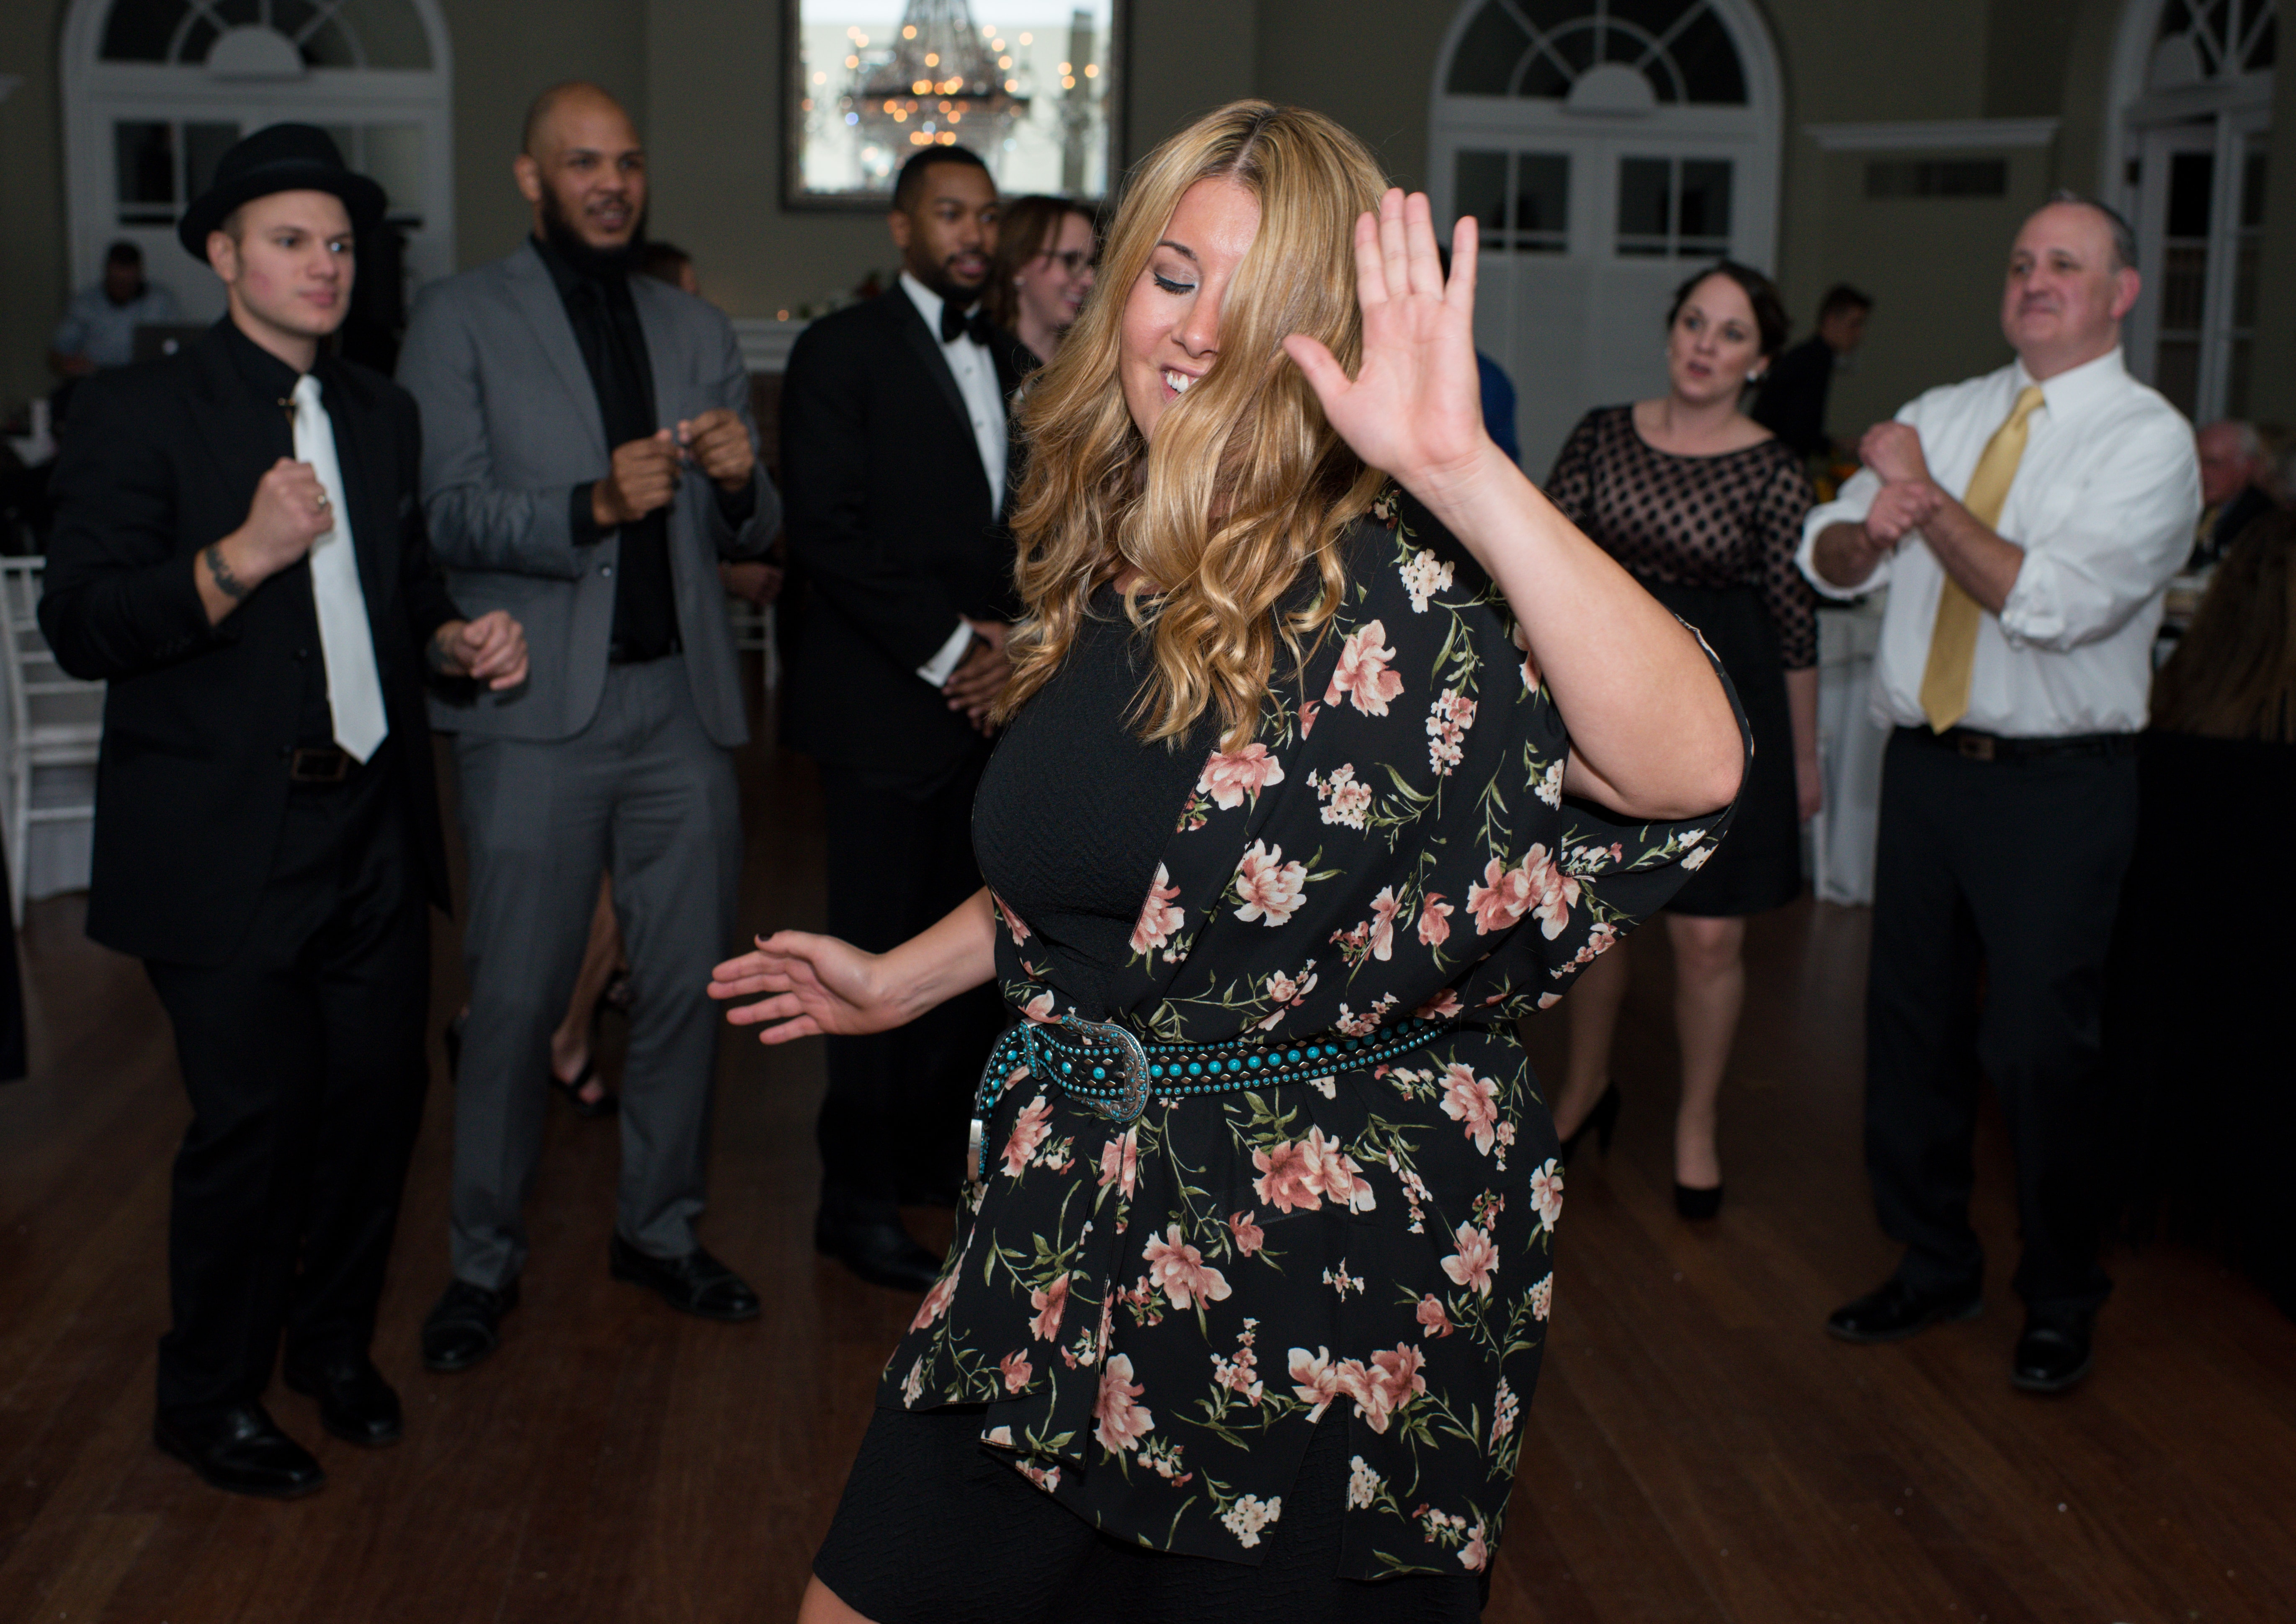 Hudson Valley Wedding Photography at Highlands Country Club Wedding Reception in Garrison, NY